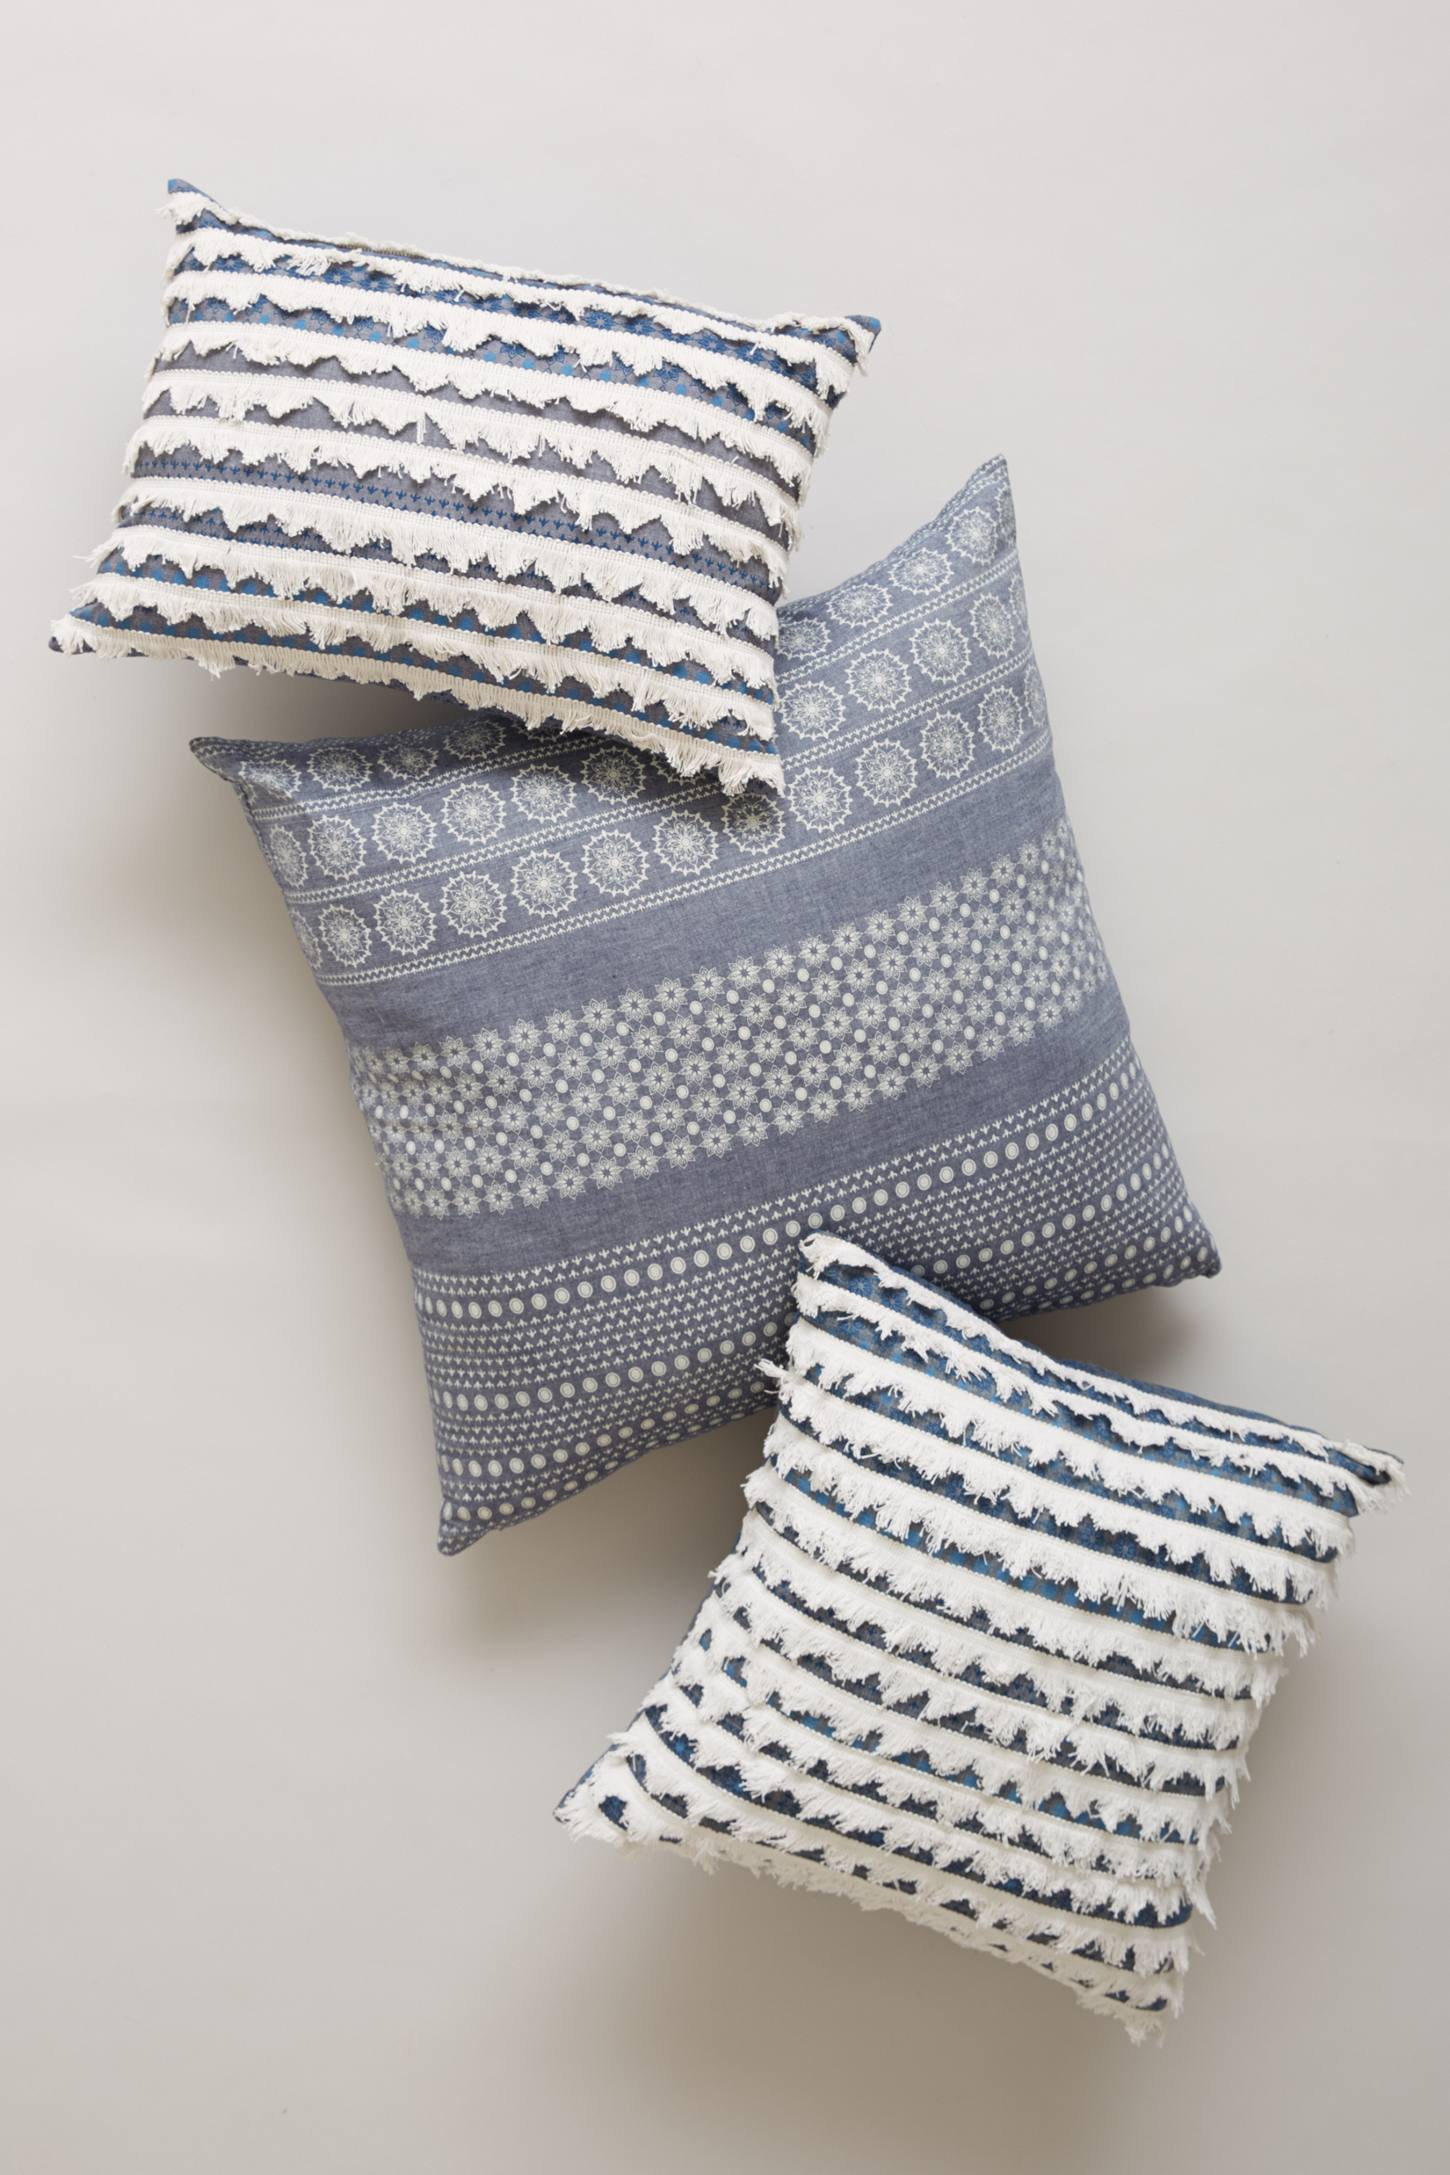 Tiered Fringe Pillow